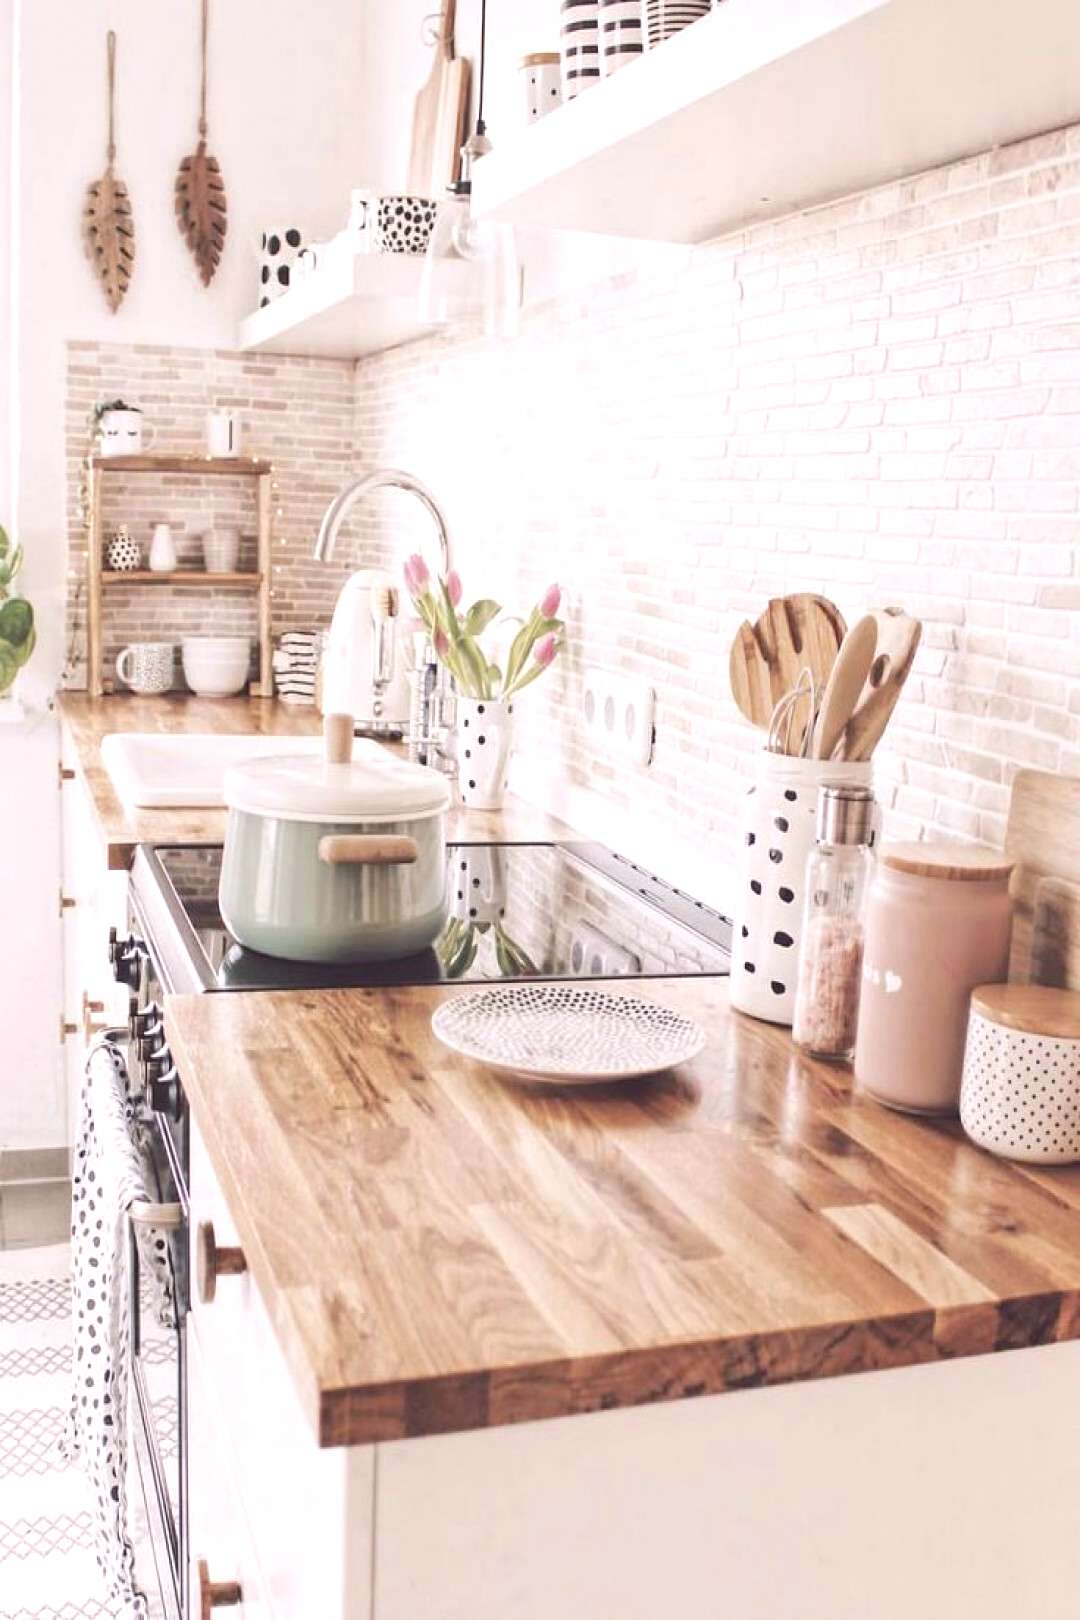 the future modern farm house style kitchen Id love to have! // repost Beth